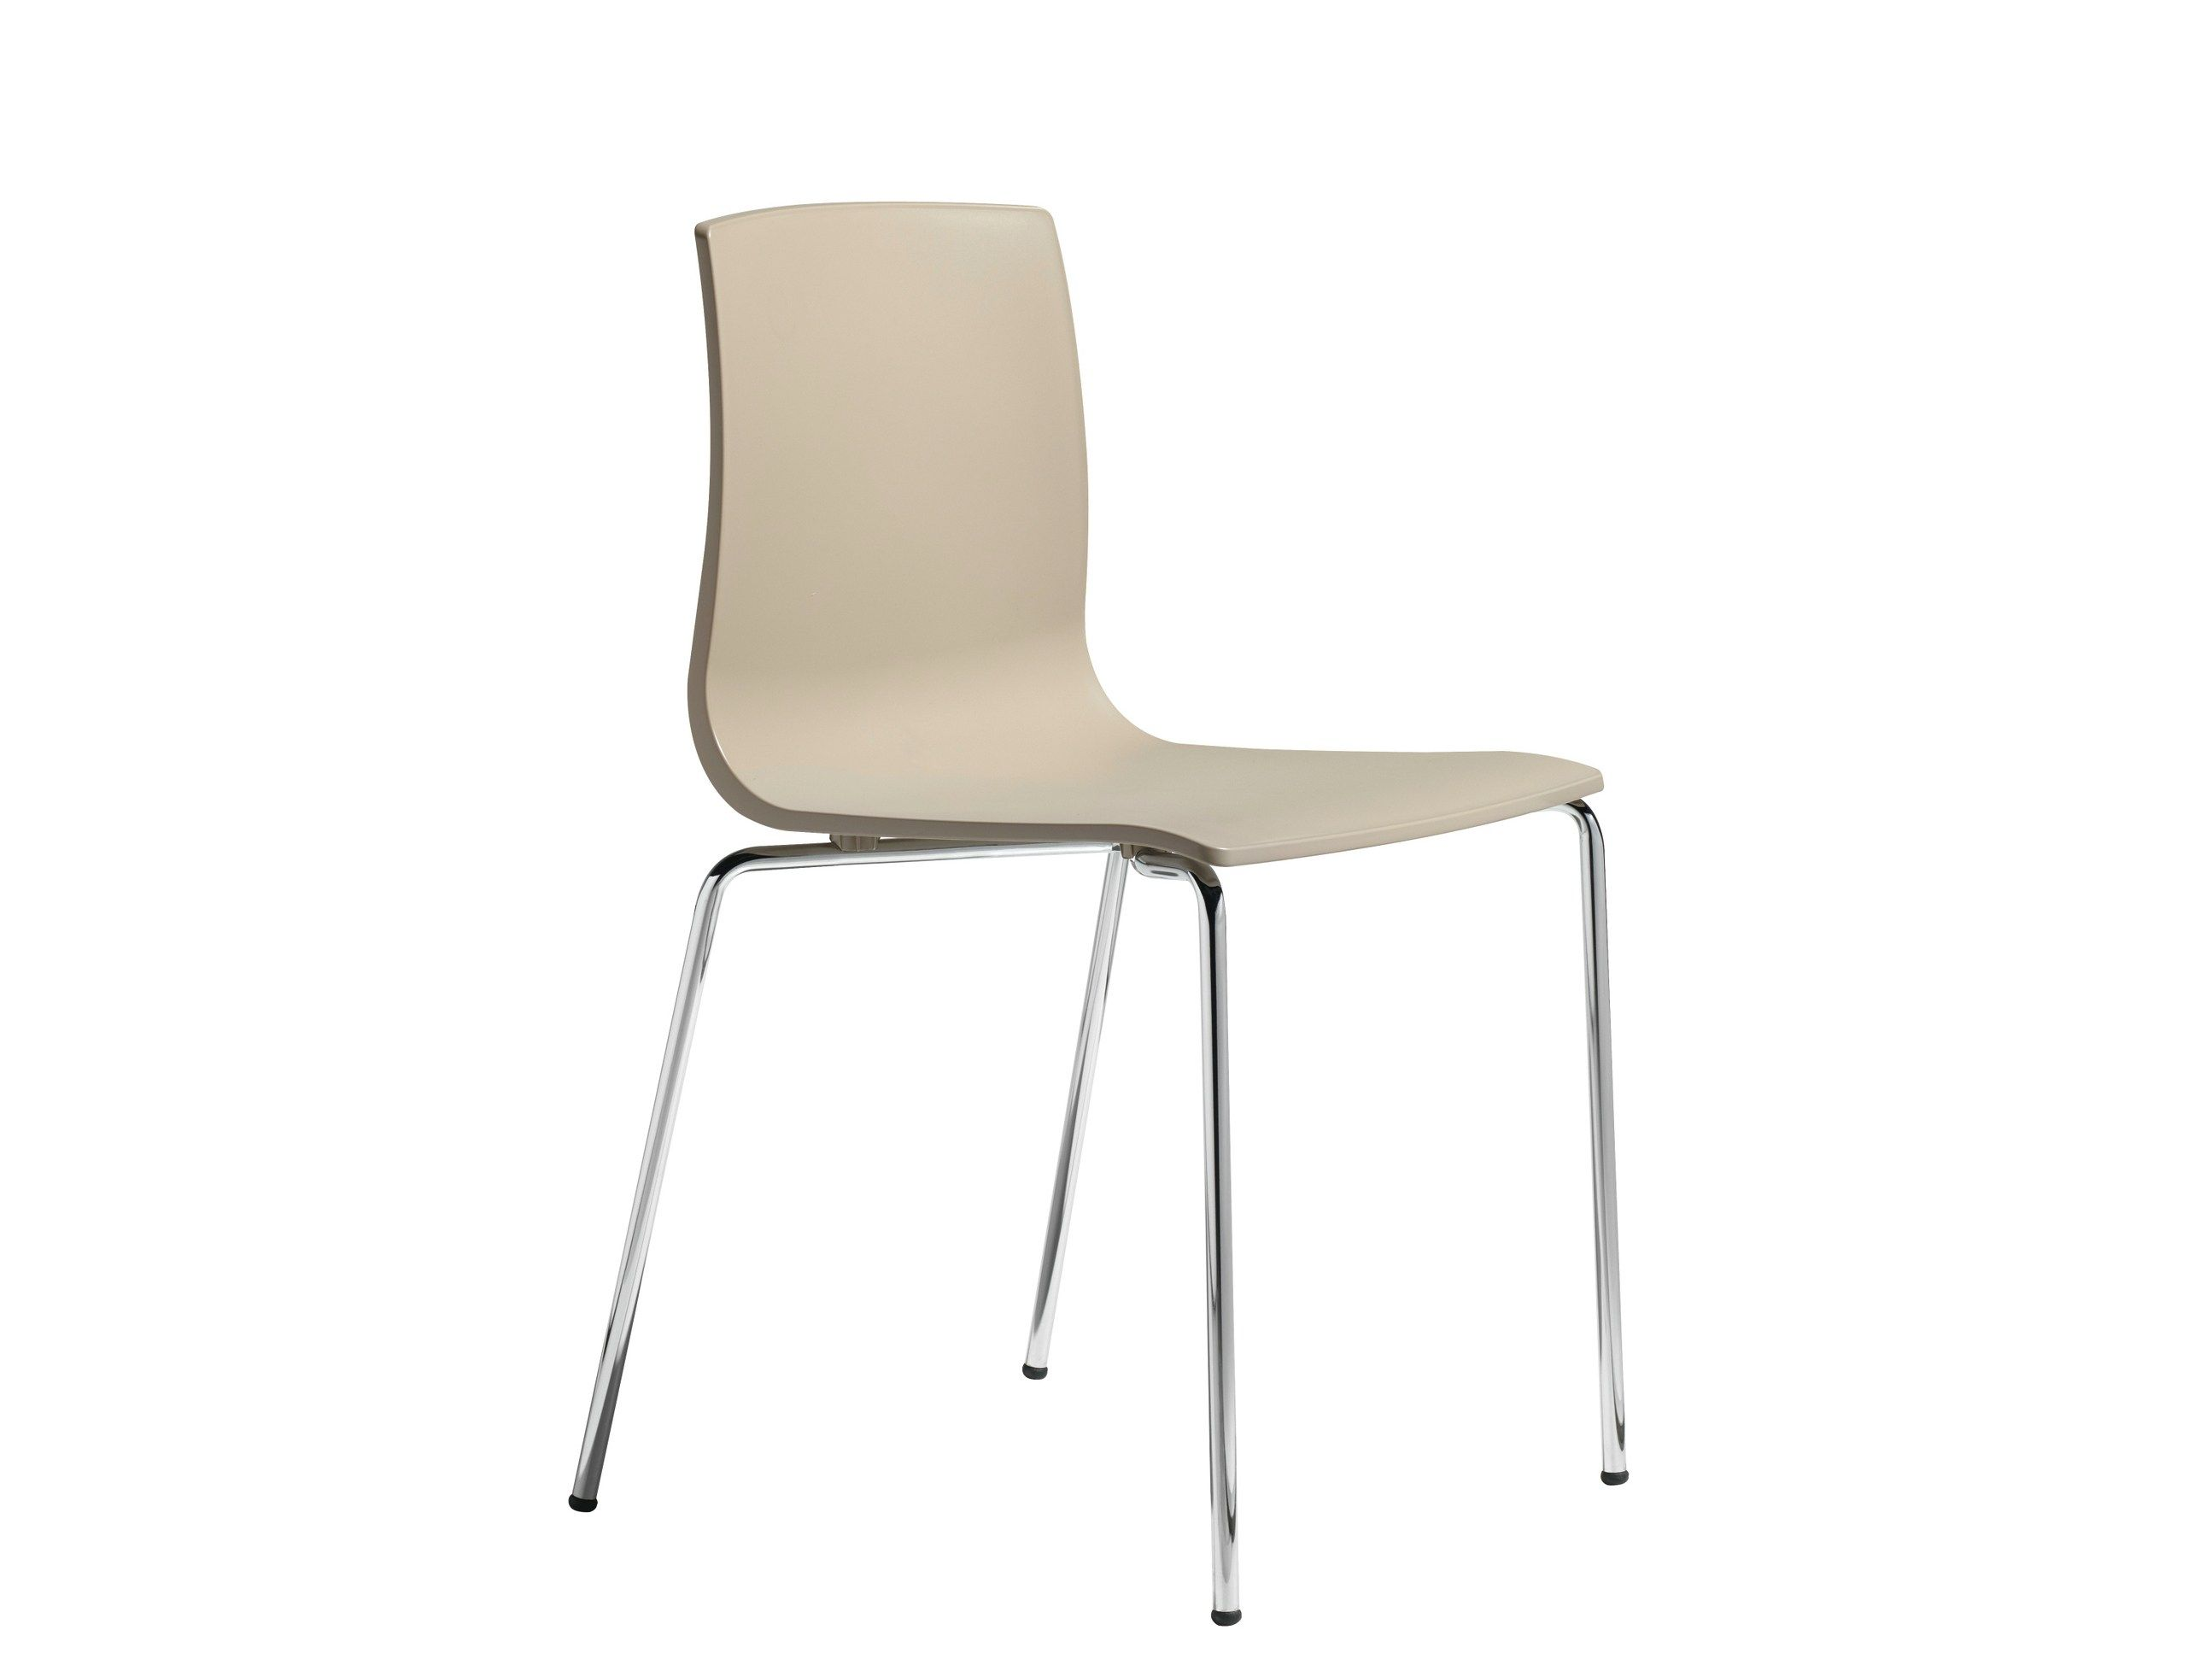 Alice chair | Design design and Alice